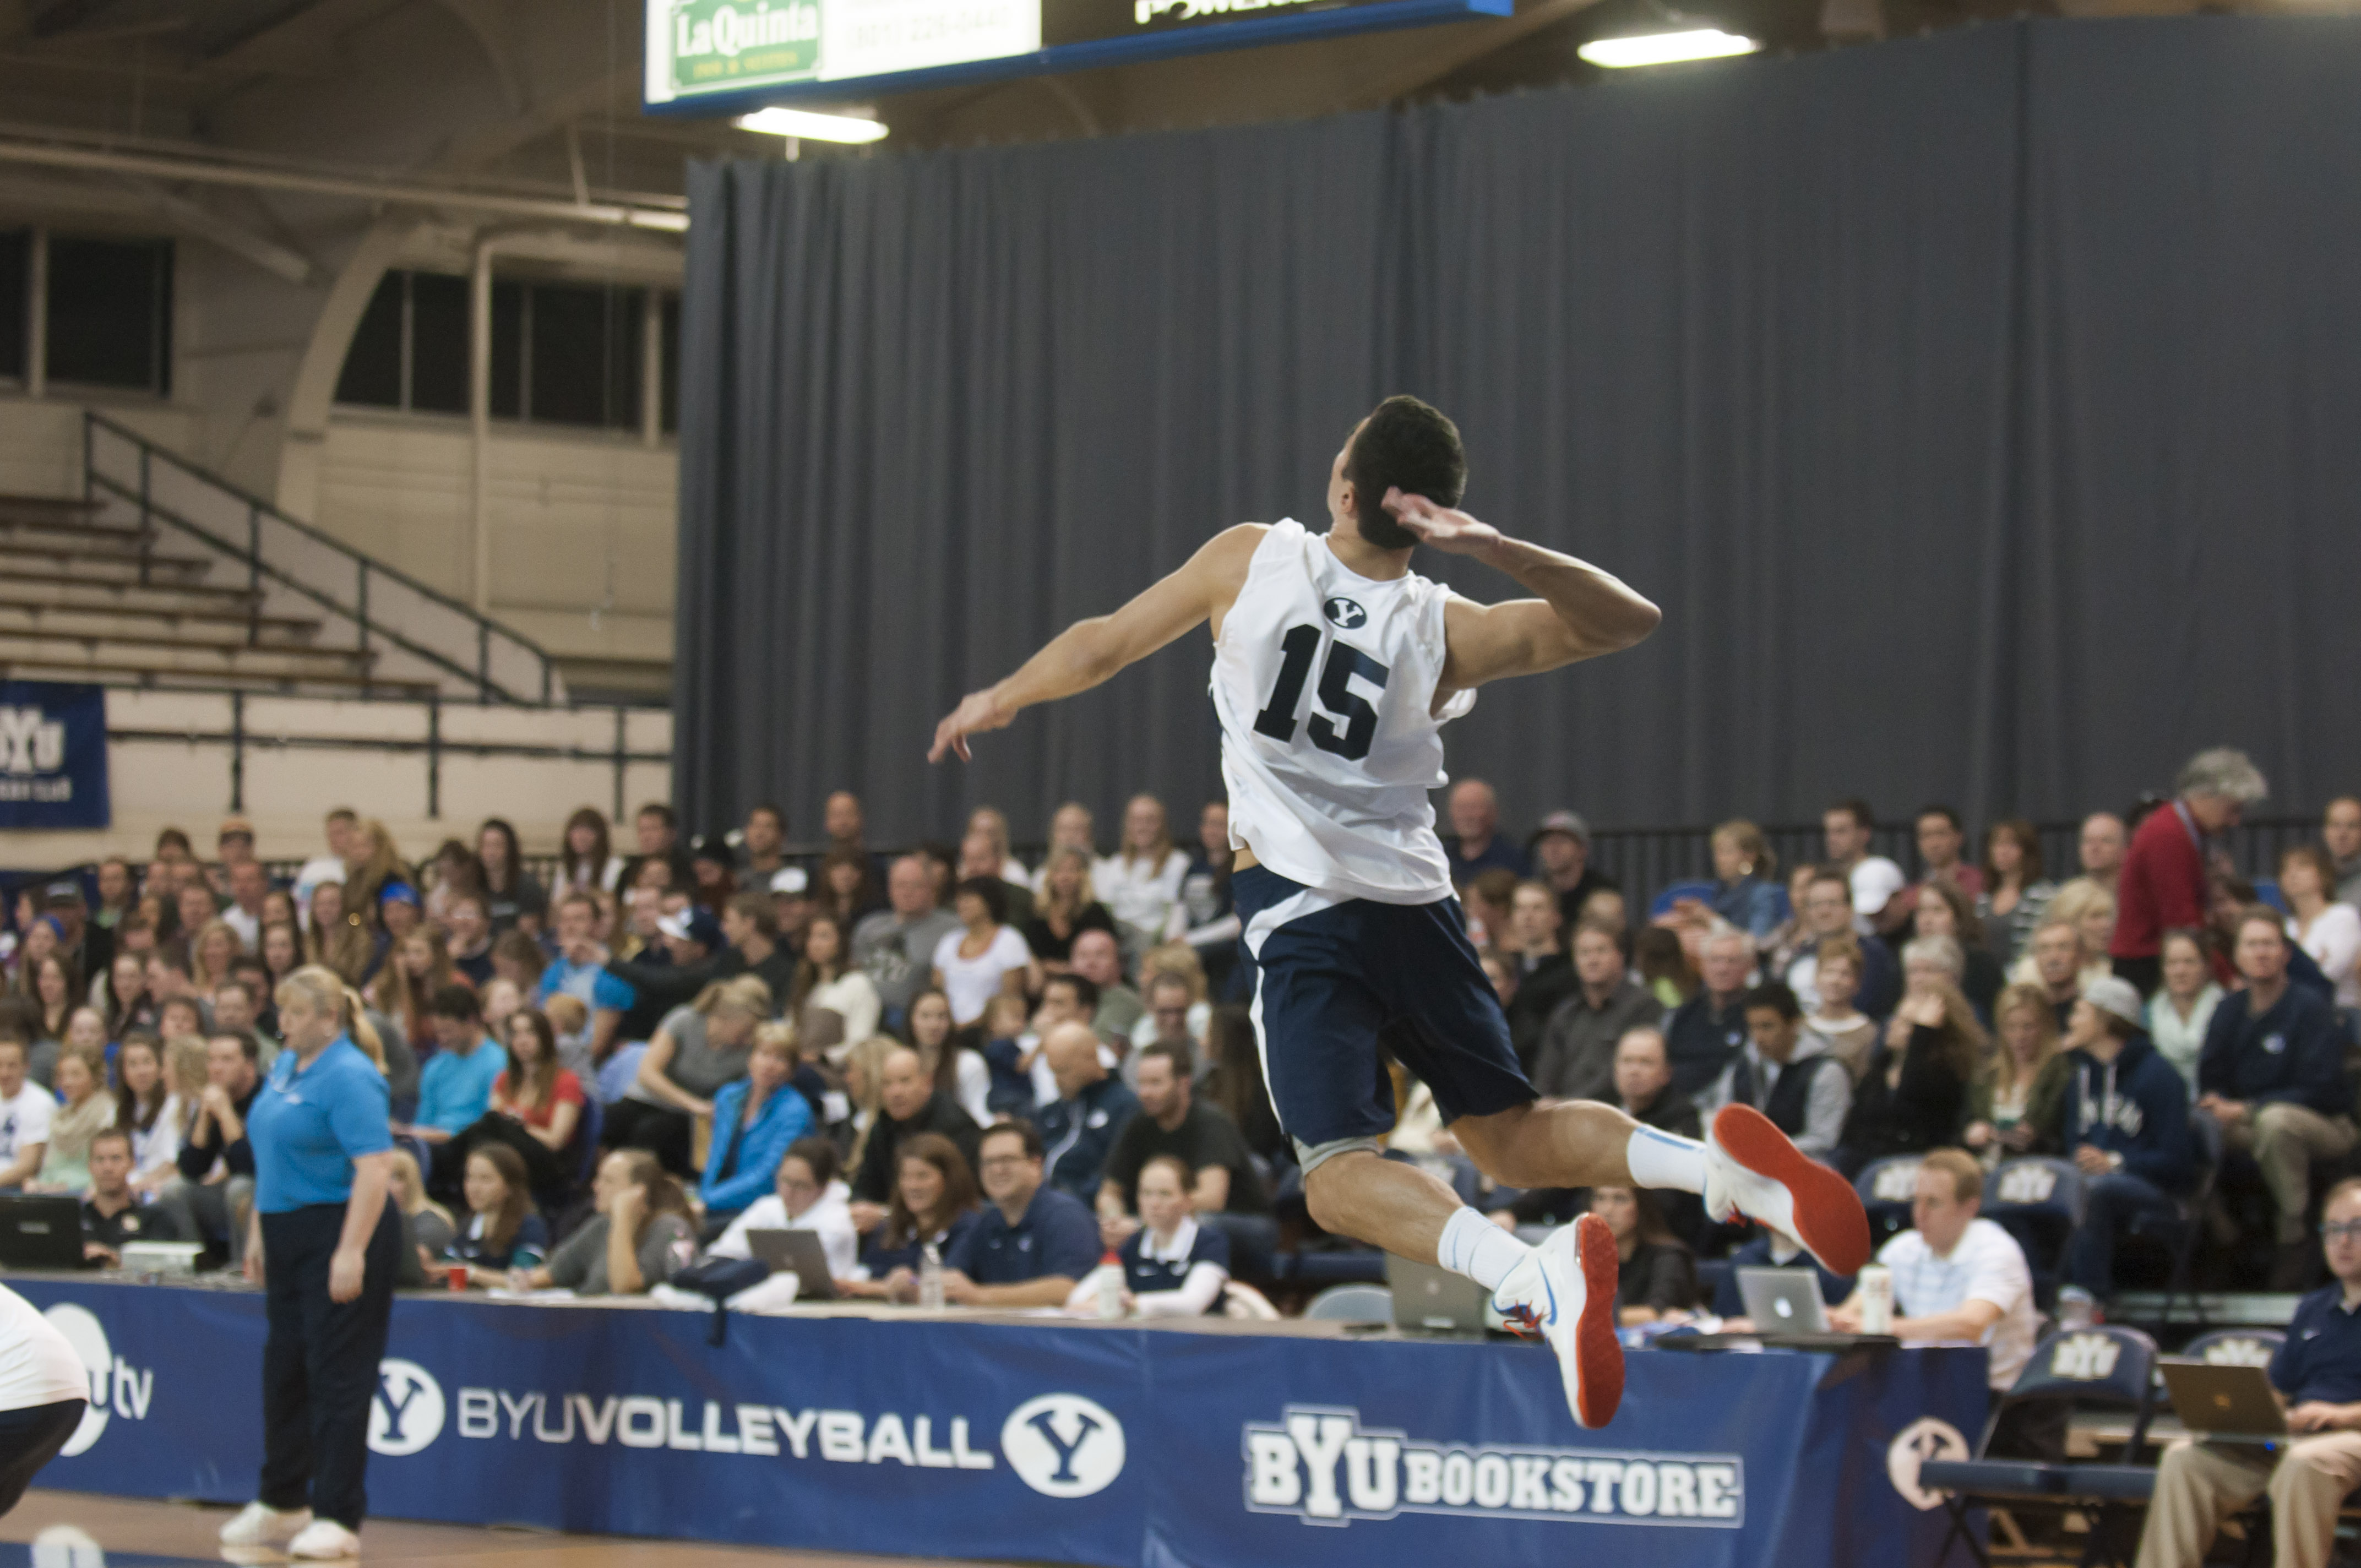 BYU's Taylor Sander serves it up in a game against Long Beach. Photo by Whitnie Soelberg.